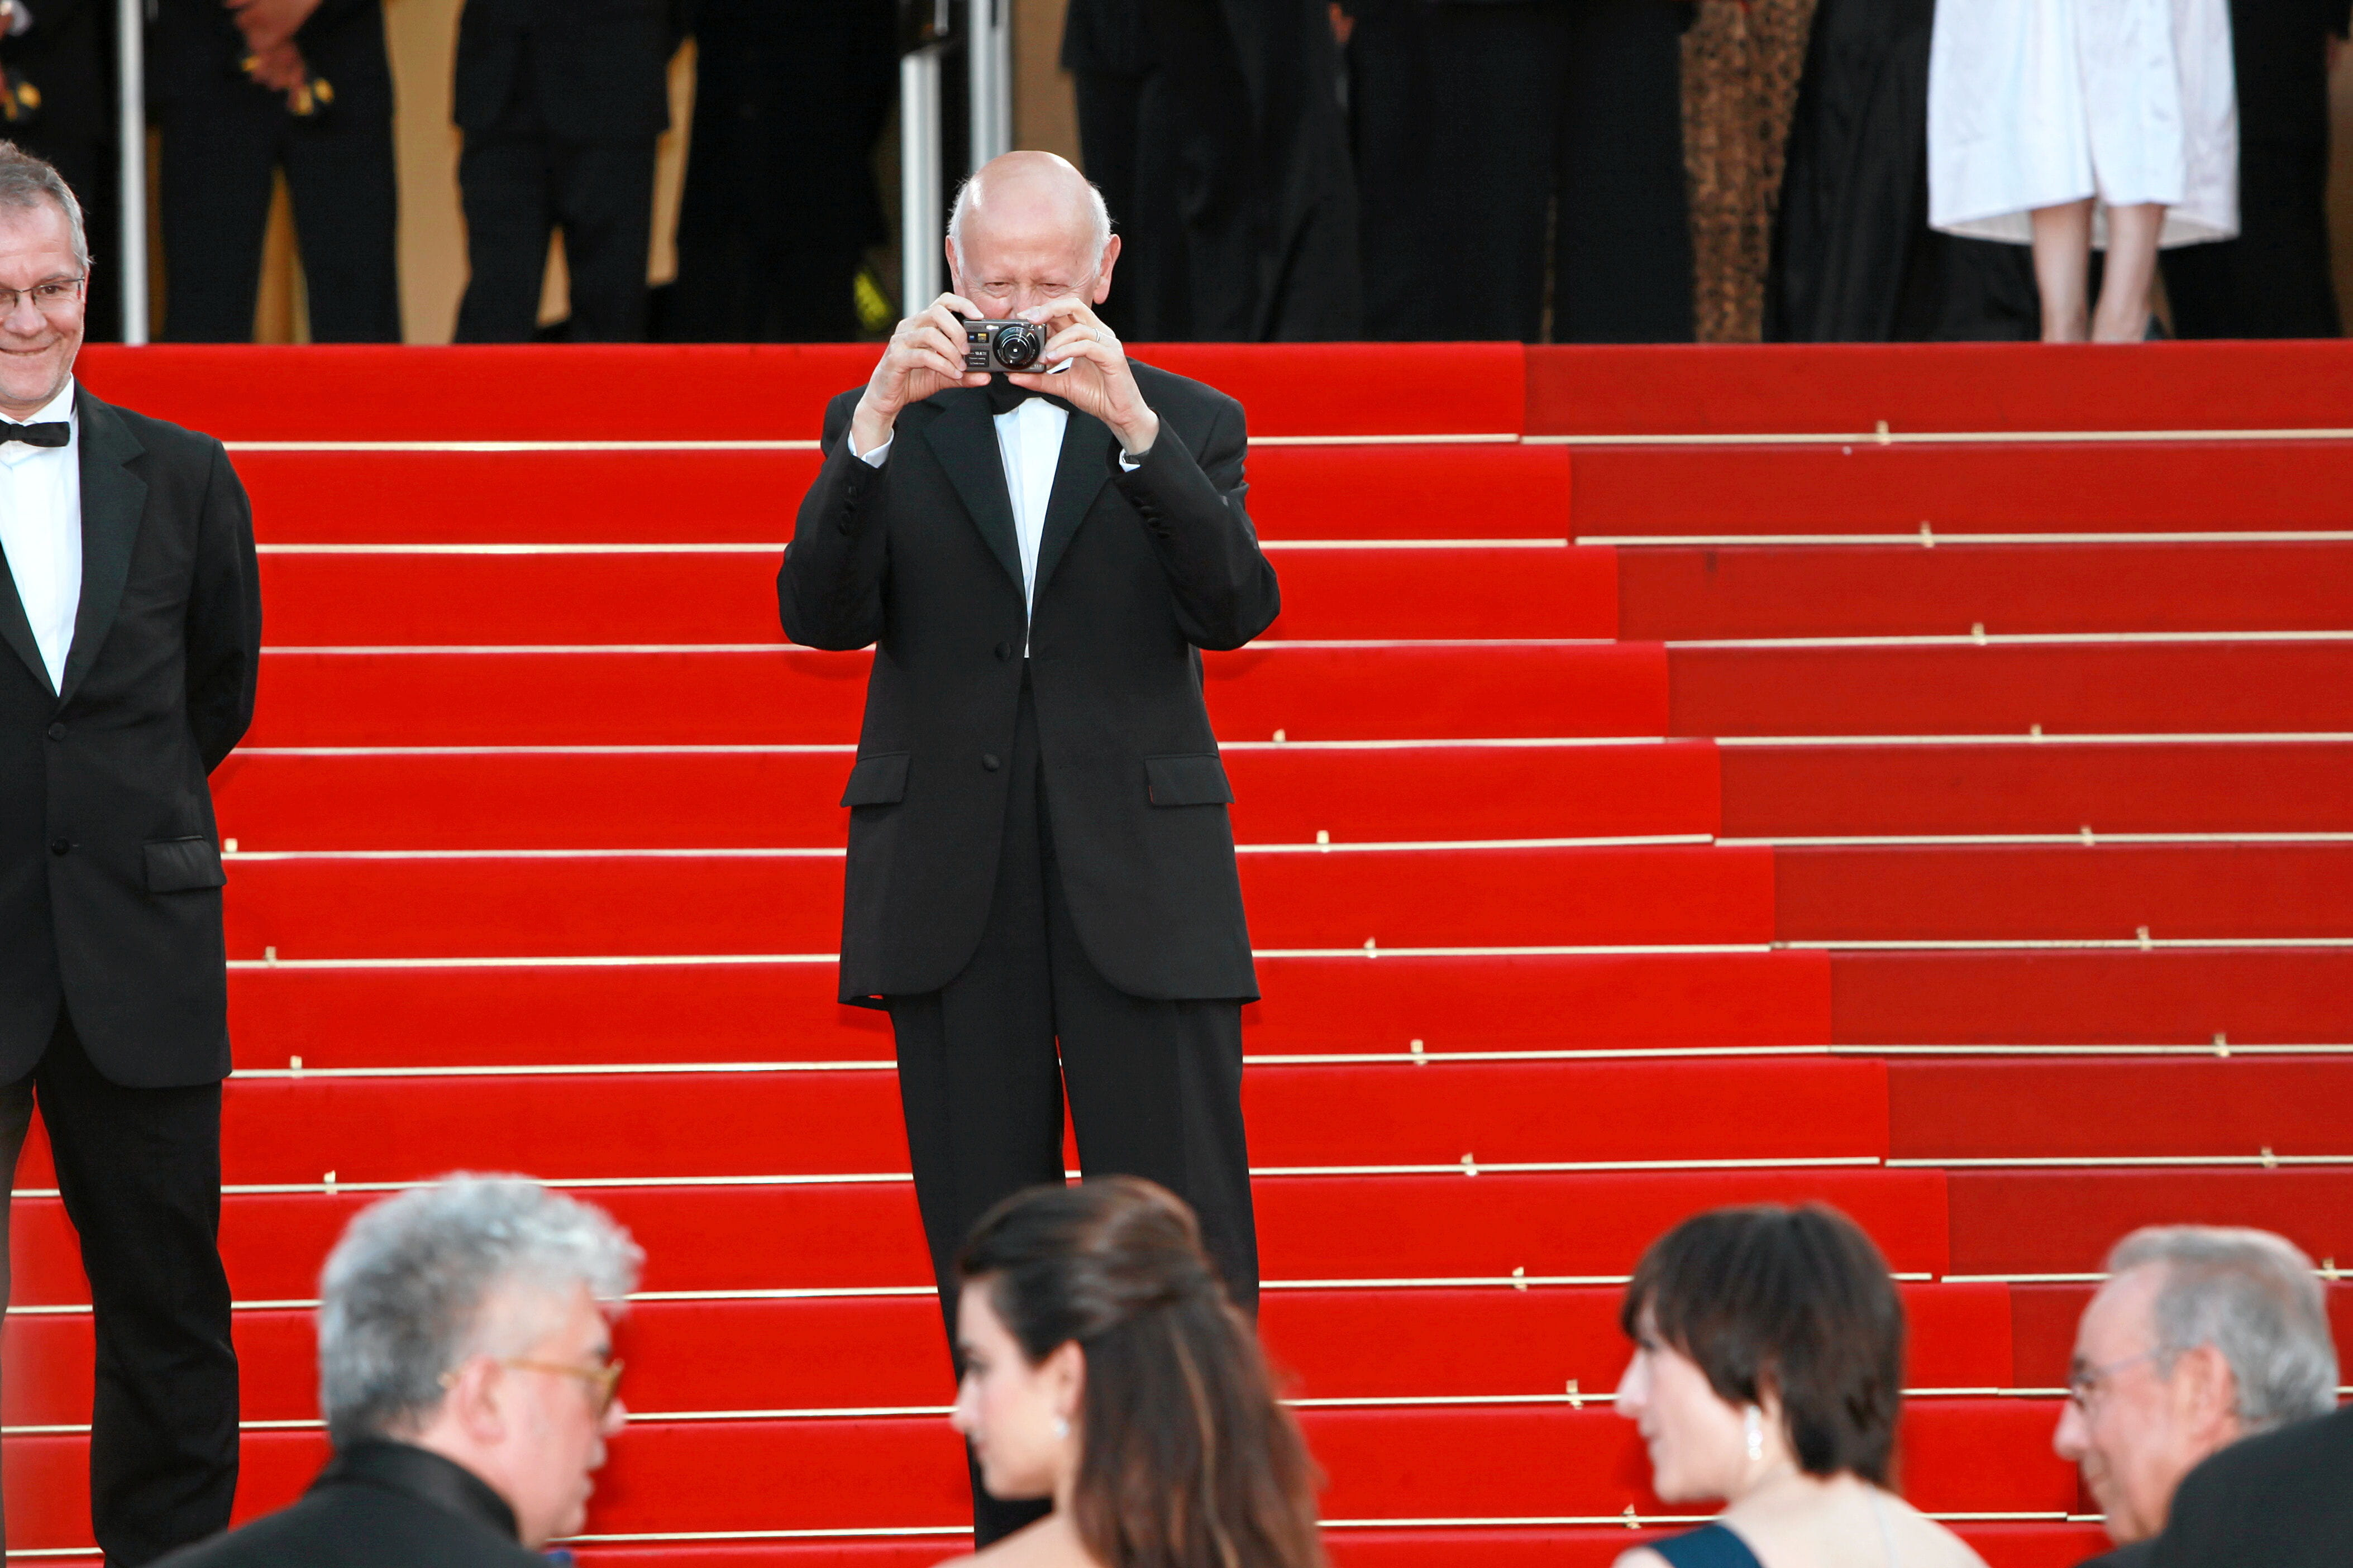 http://www.linternaute.com/cinema/evenement/un-autre-regard-sur-cannes/image/image1-cinema-evenements-2145495.jpg